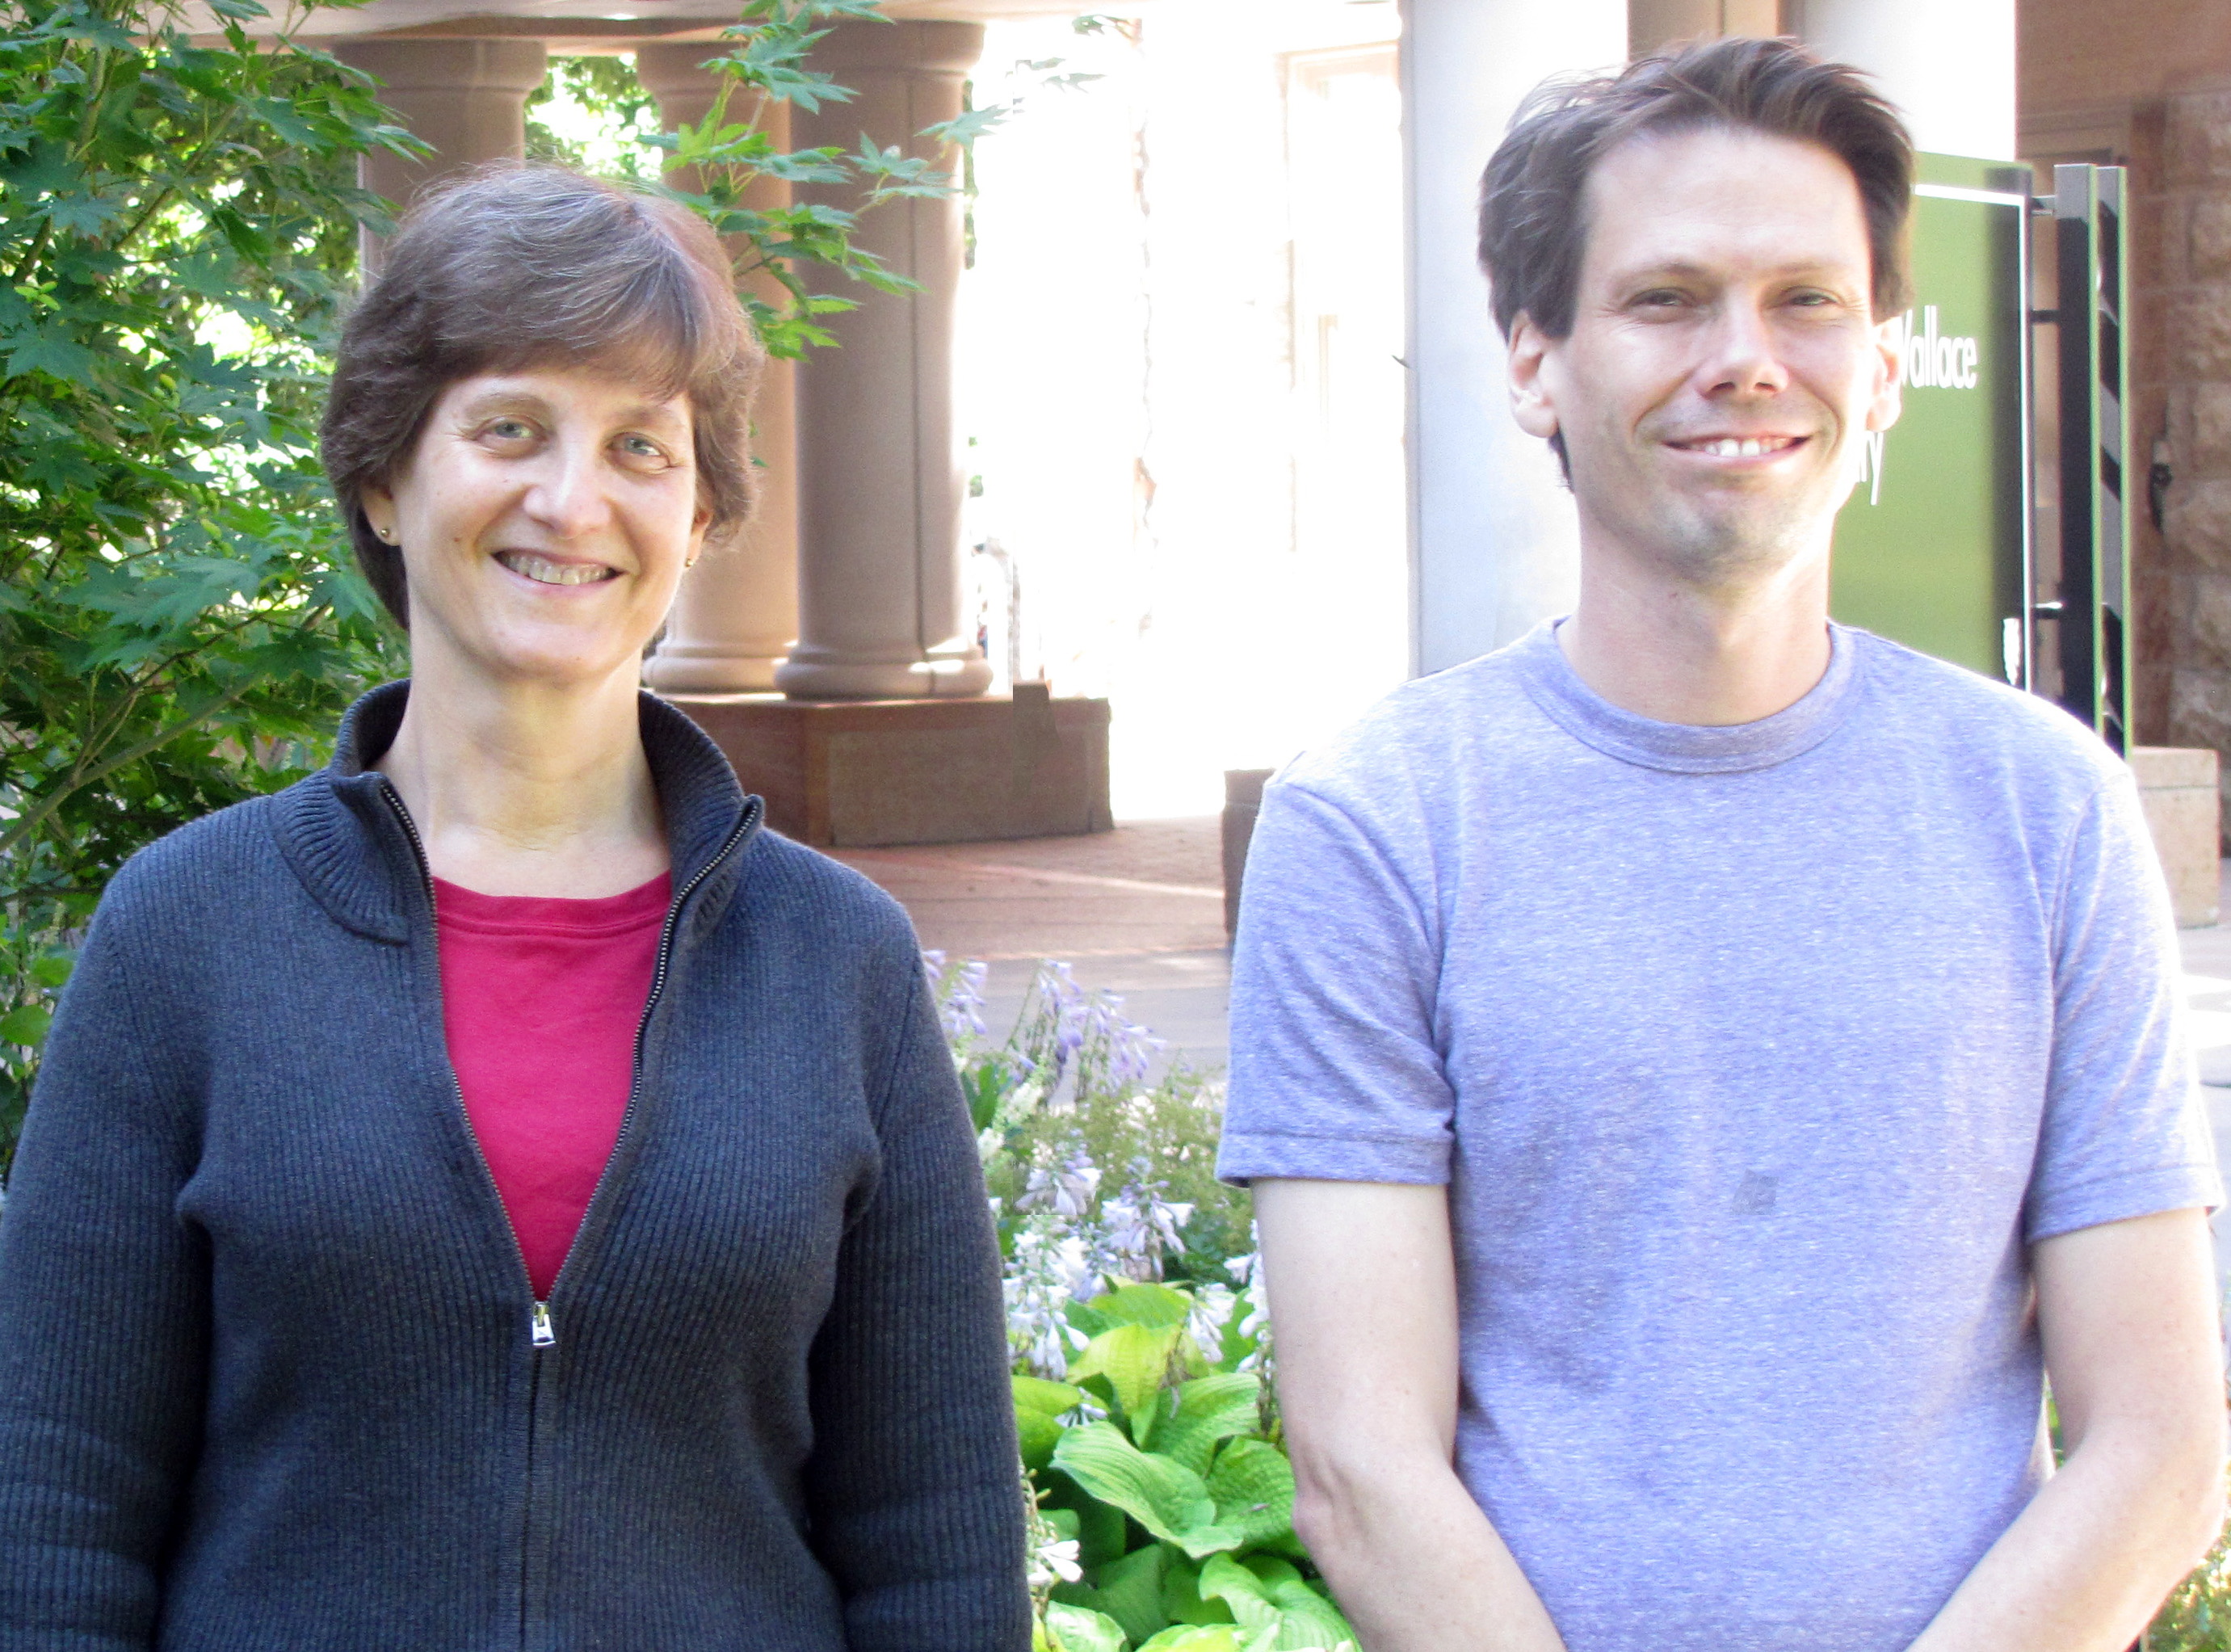 Aaron Albertson & Beth Hillemann's picture